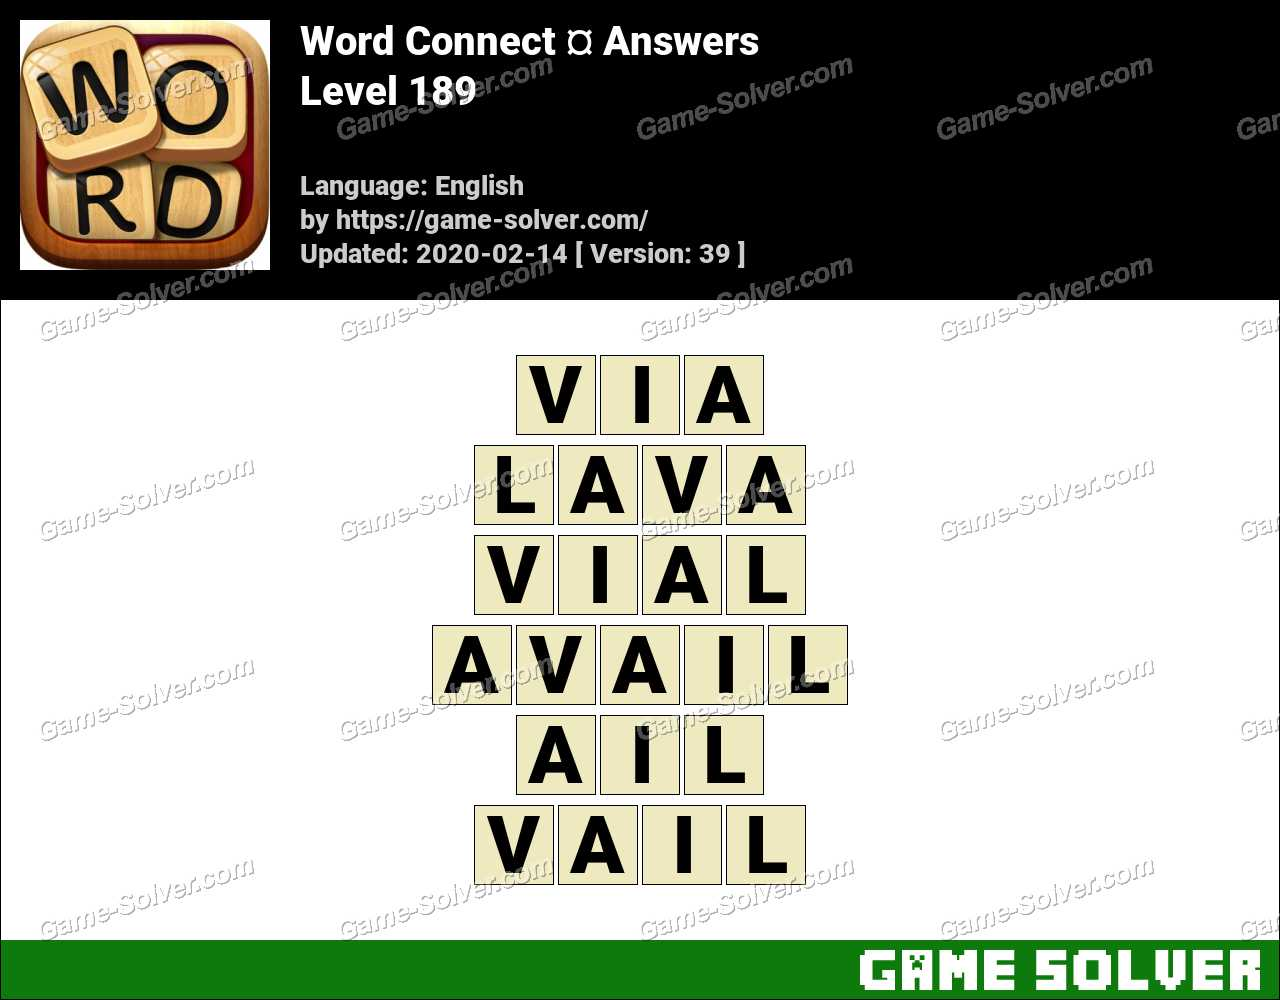 Word Connect Level 189 Answers